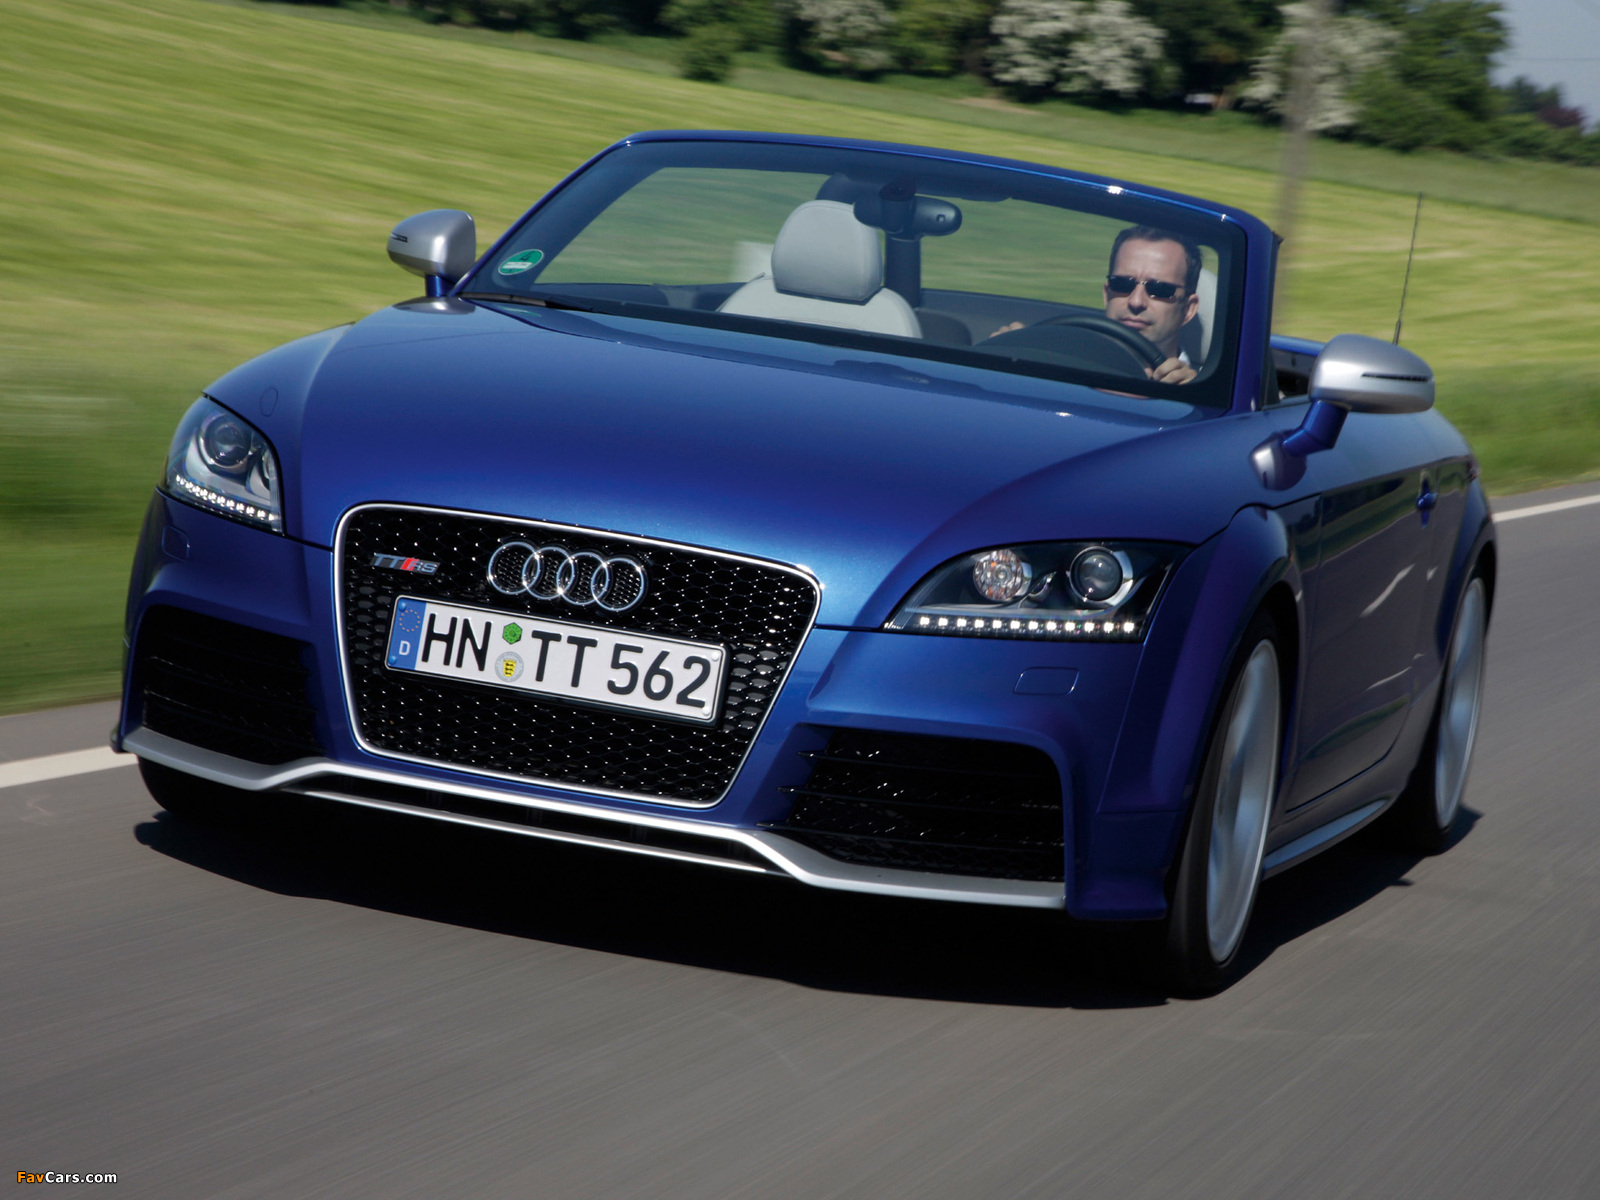 Audi Tt Rs Roadster 8j 2009 Photos 1600x1200